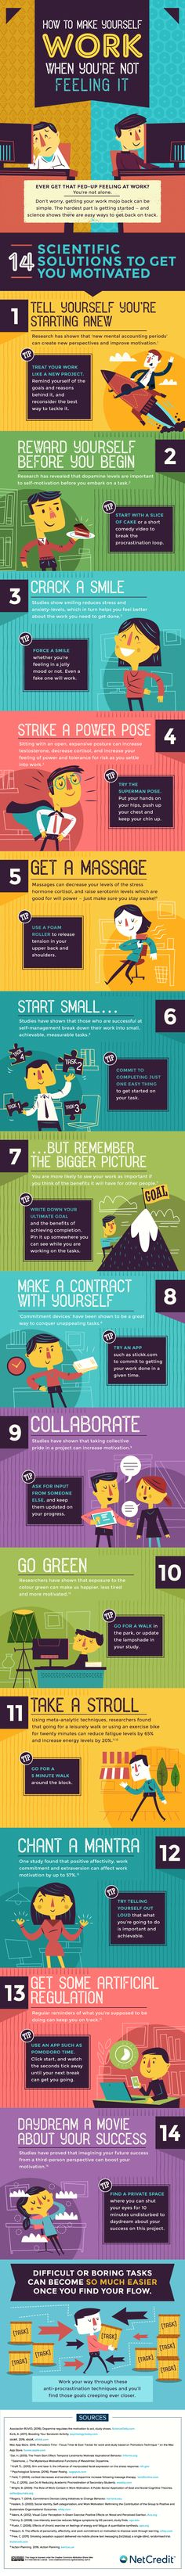 How to Make Yourself Work When You're Not Feeling It Infographic - http://elearninginfographics.com/make-yourself-work-when-youre-not-feeling-it-infographic/